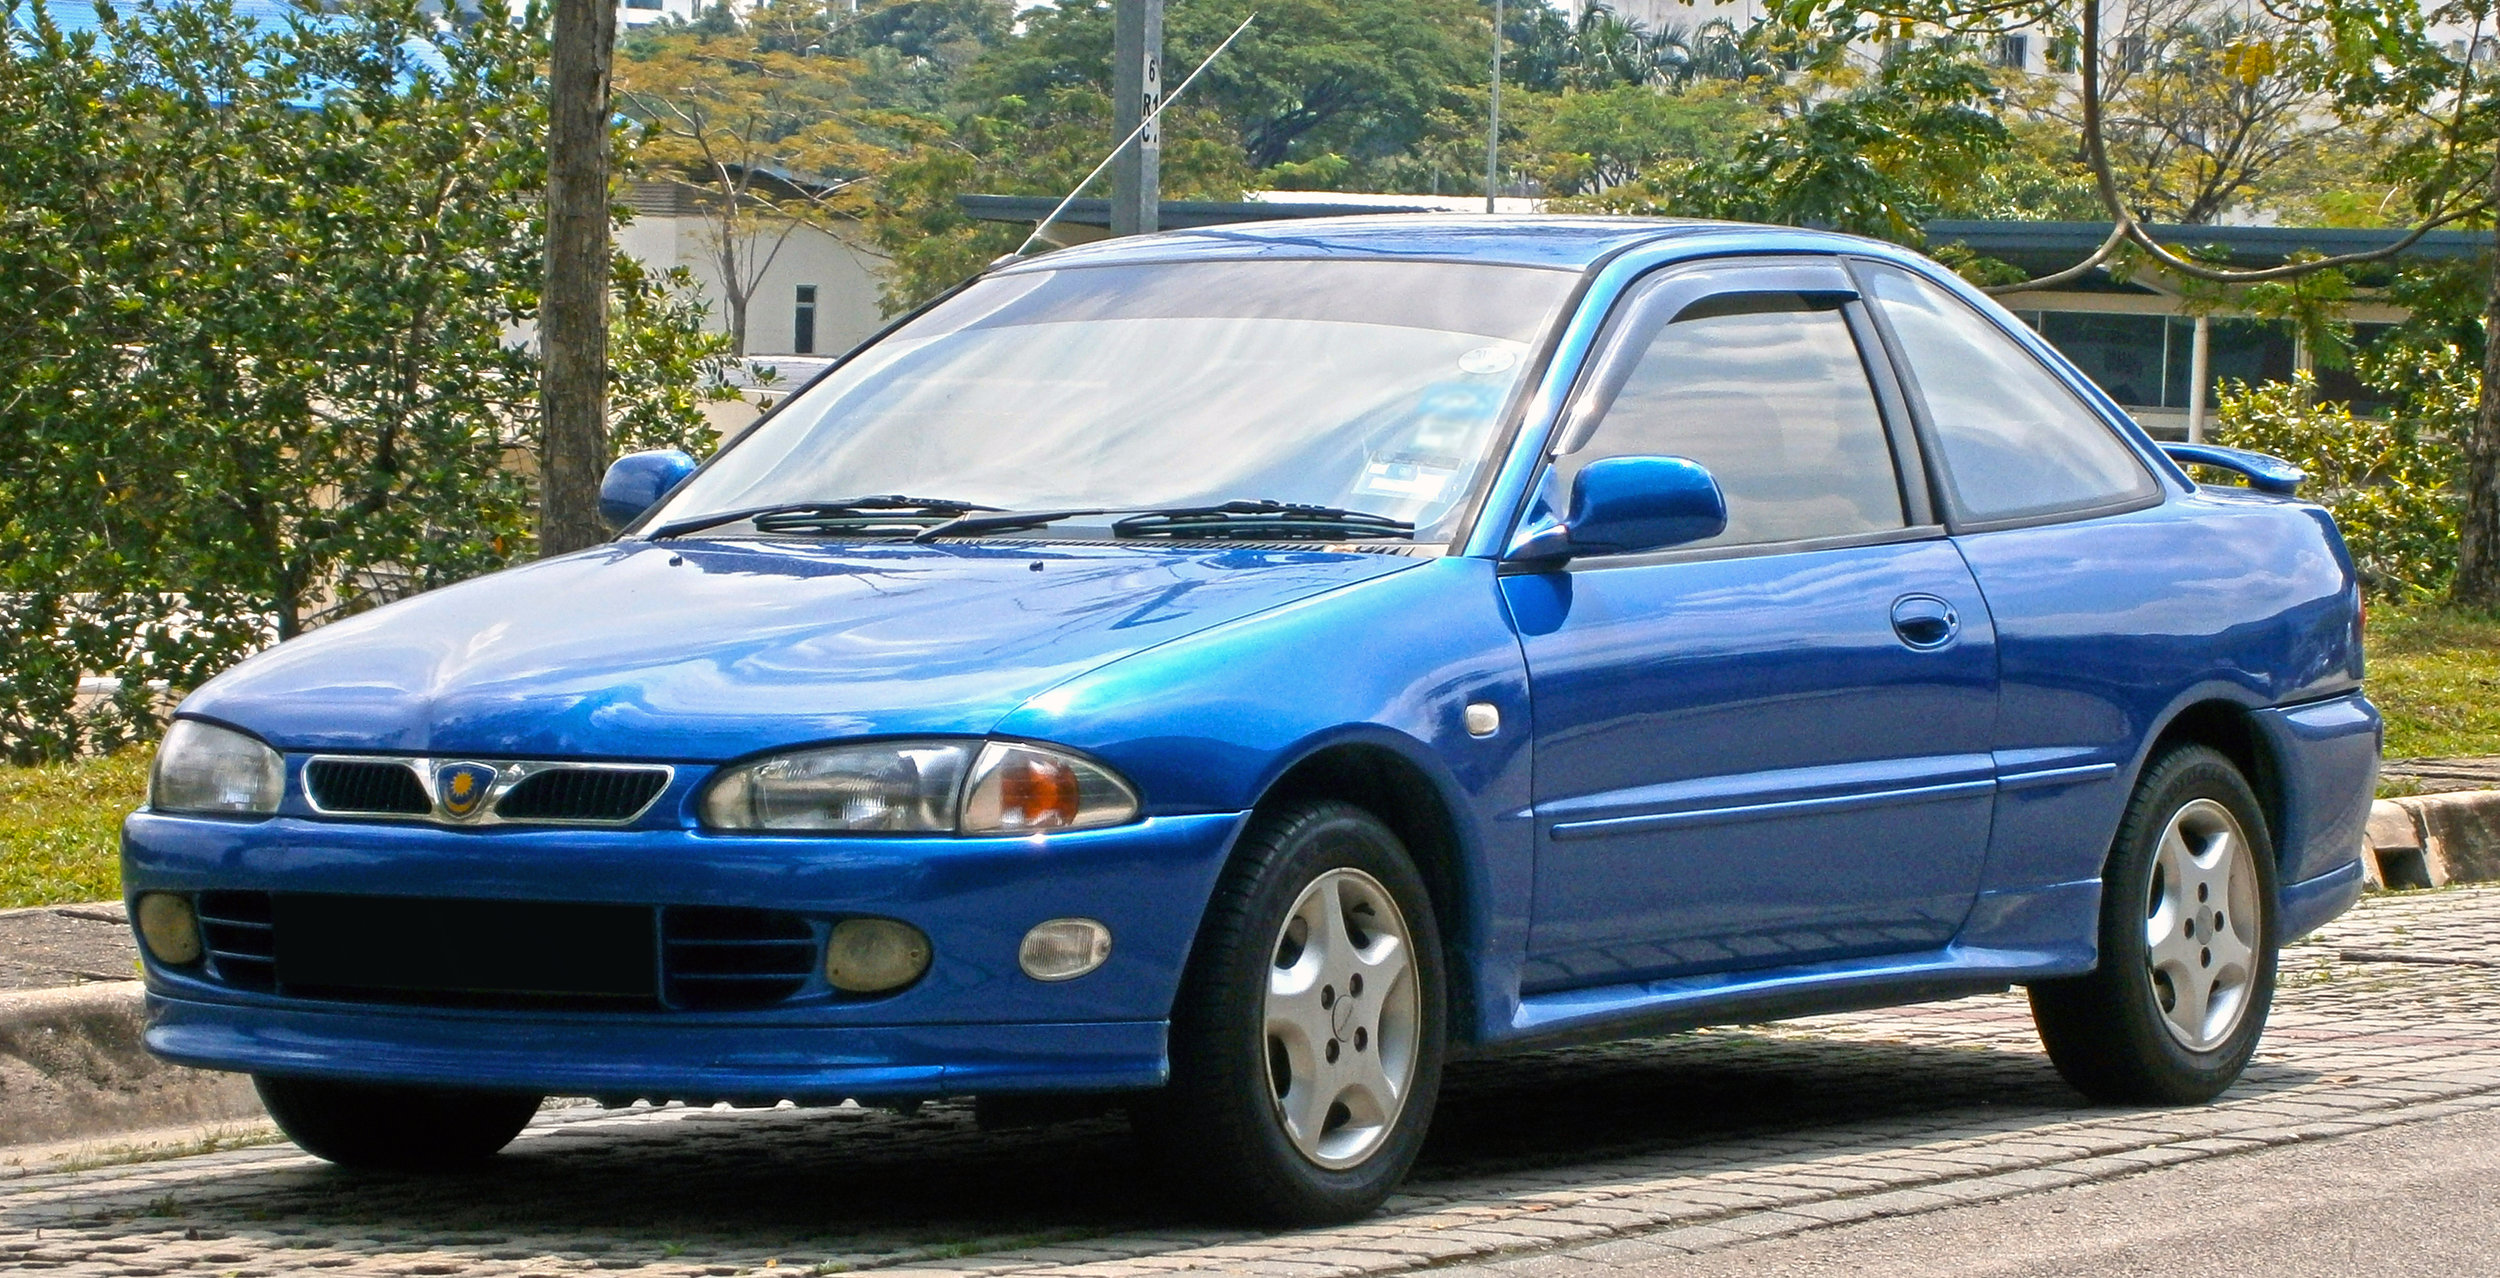 The Putra was Proton's first stylish coupe.